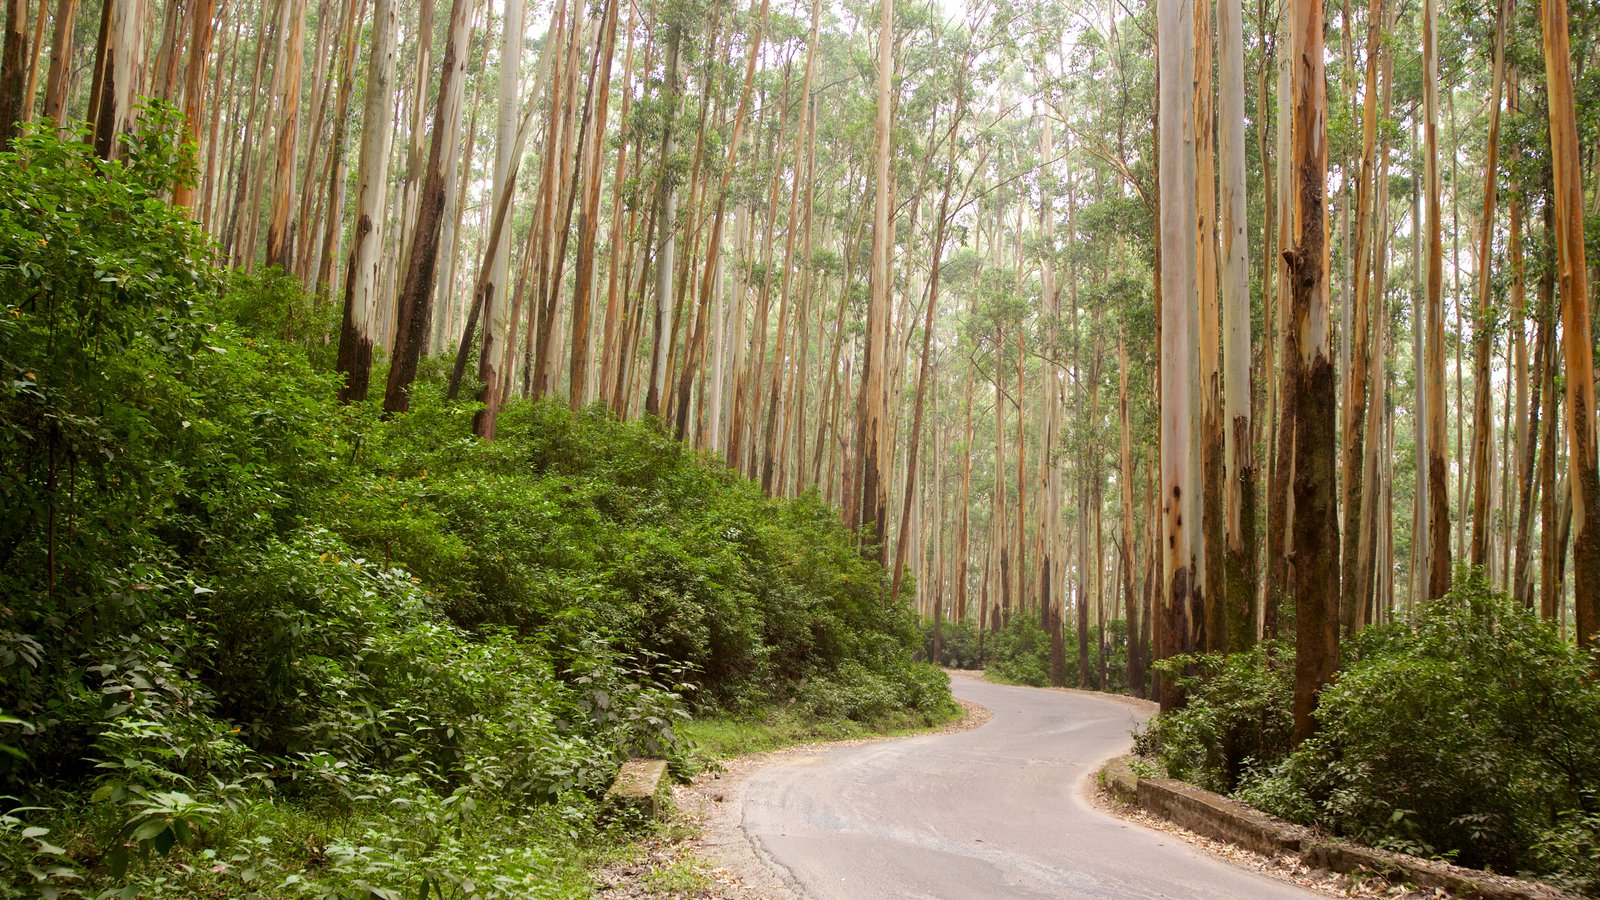 Ooty featuring forests